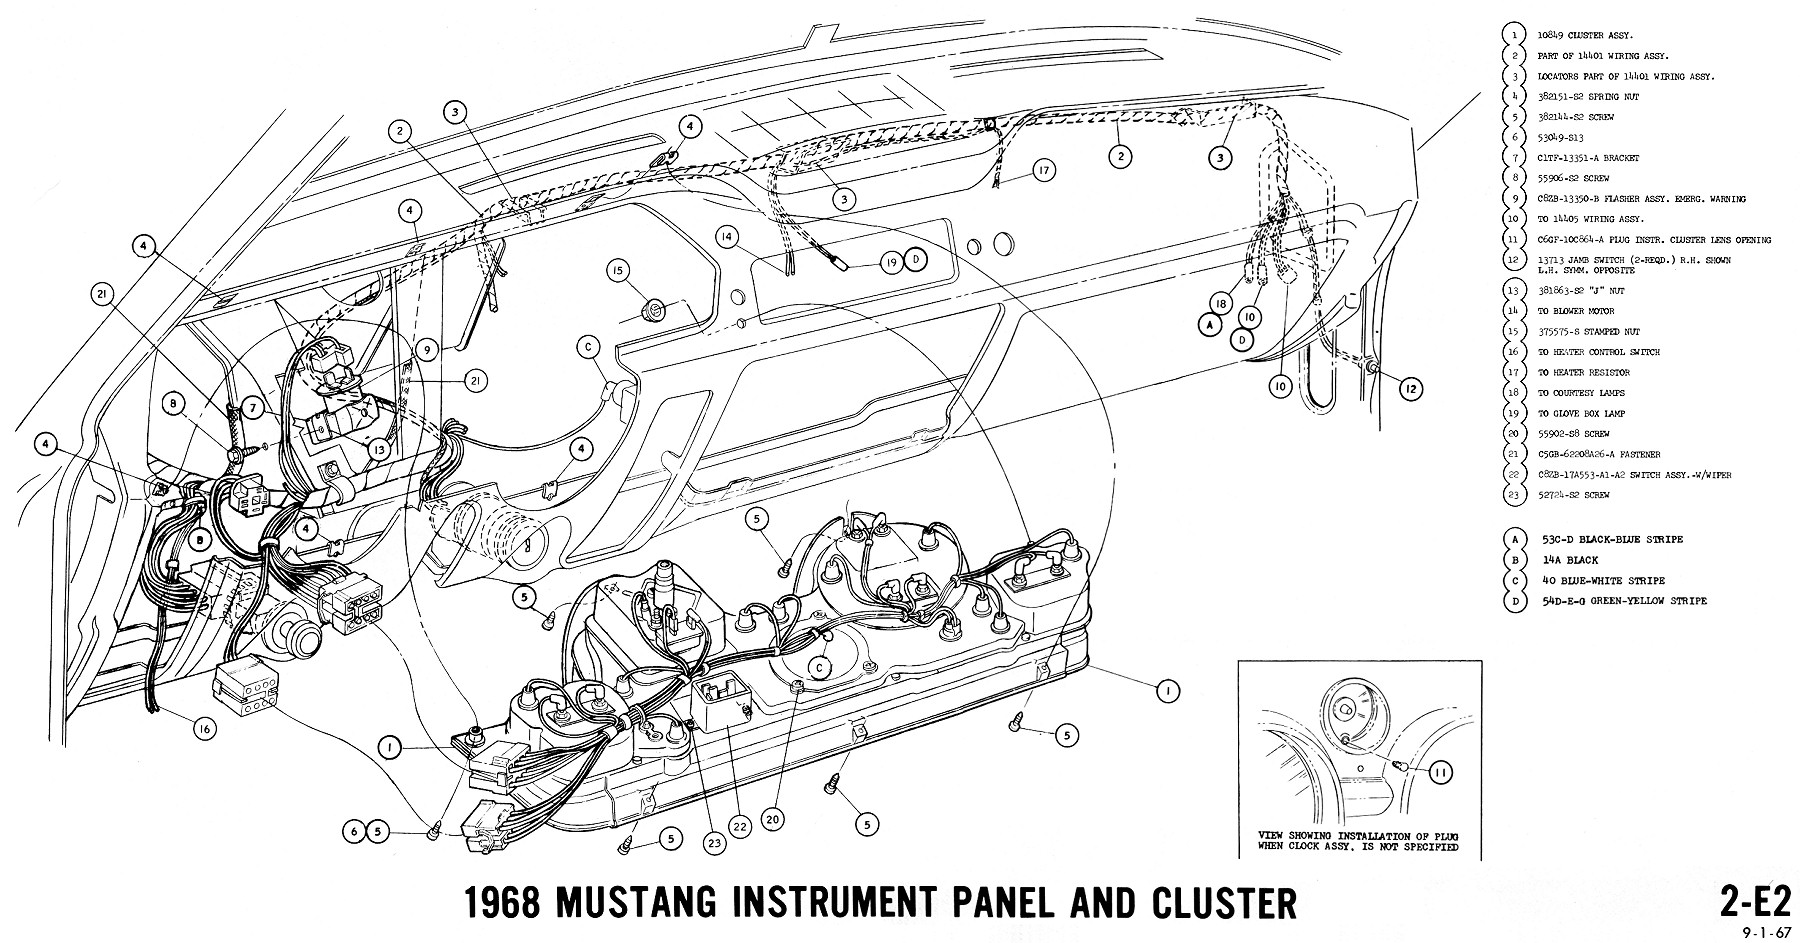 Wiring Mercury Diagram Motor Outboard Og251541 1967 Mustang Cluster Schematic Start Building A 1968 Diagrams And Vacuum Schematics Average Joe Rh Averagejoerestoration Com Alternator 67 Ammeter